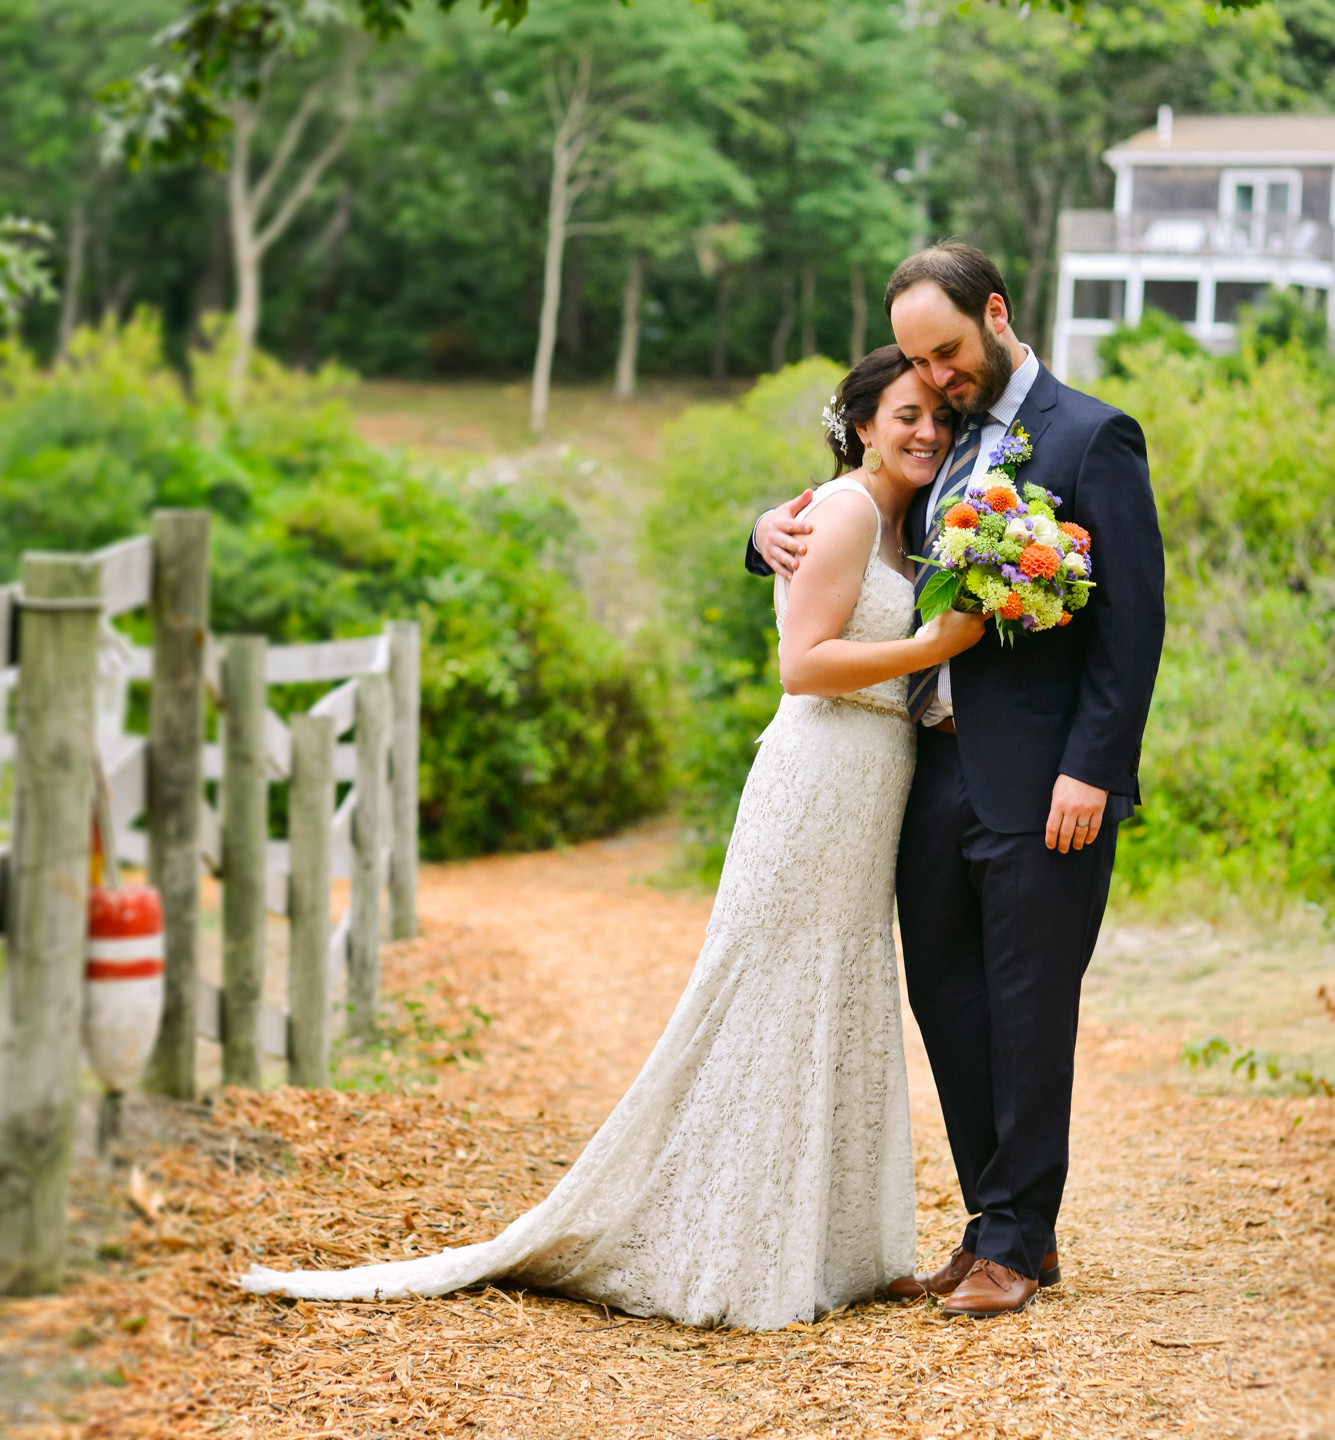 A bride and groom on a path at The Beach Plum Inn & Restaurant photo by David Welch Photography